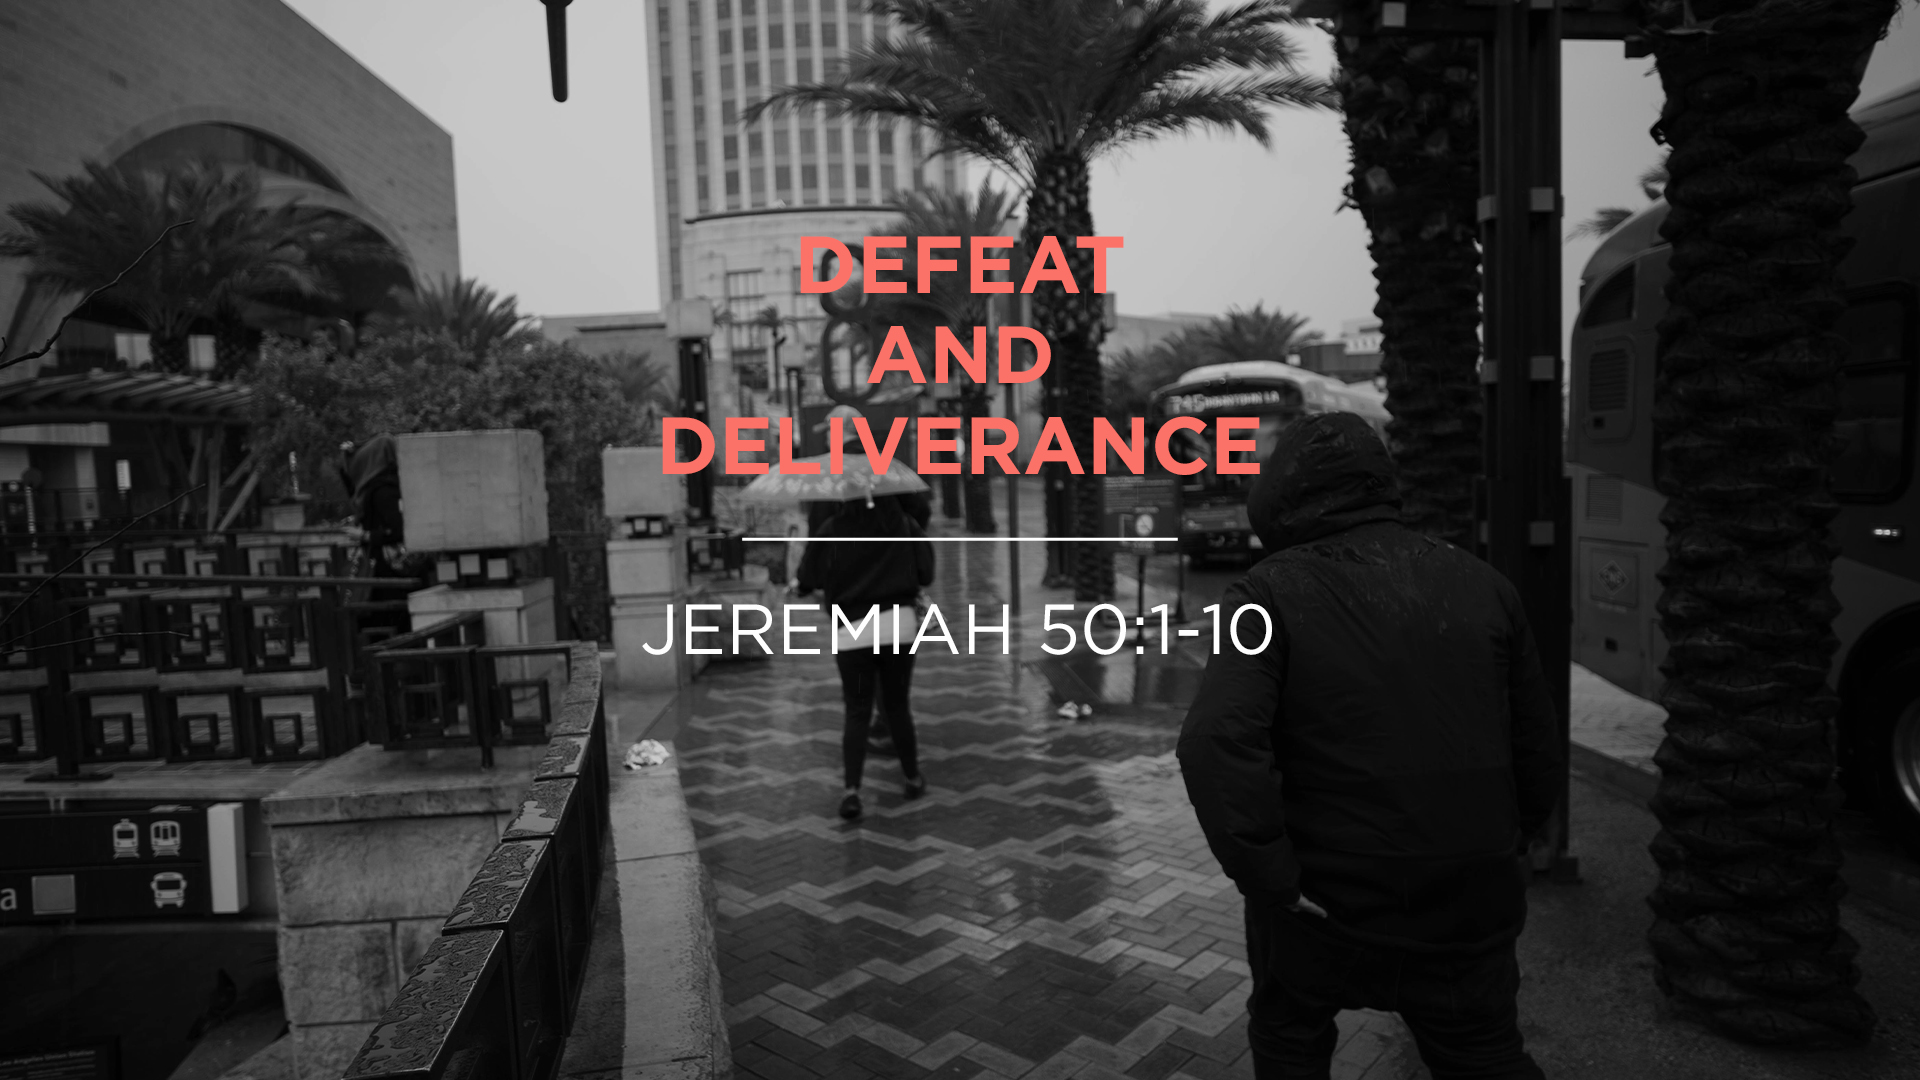 Defeat and Deliverance